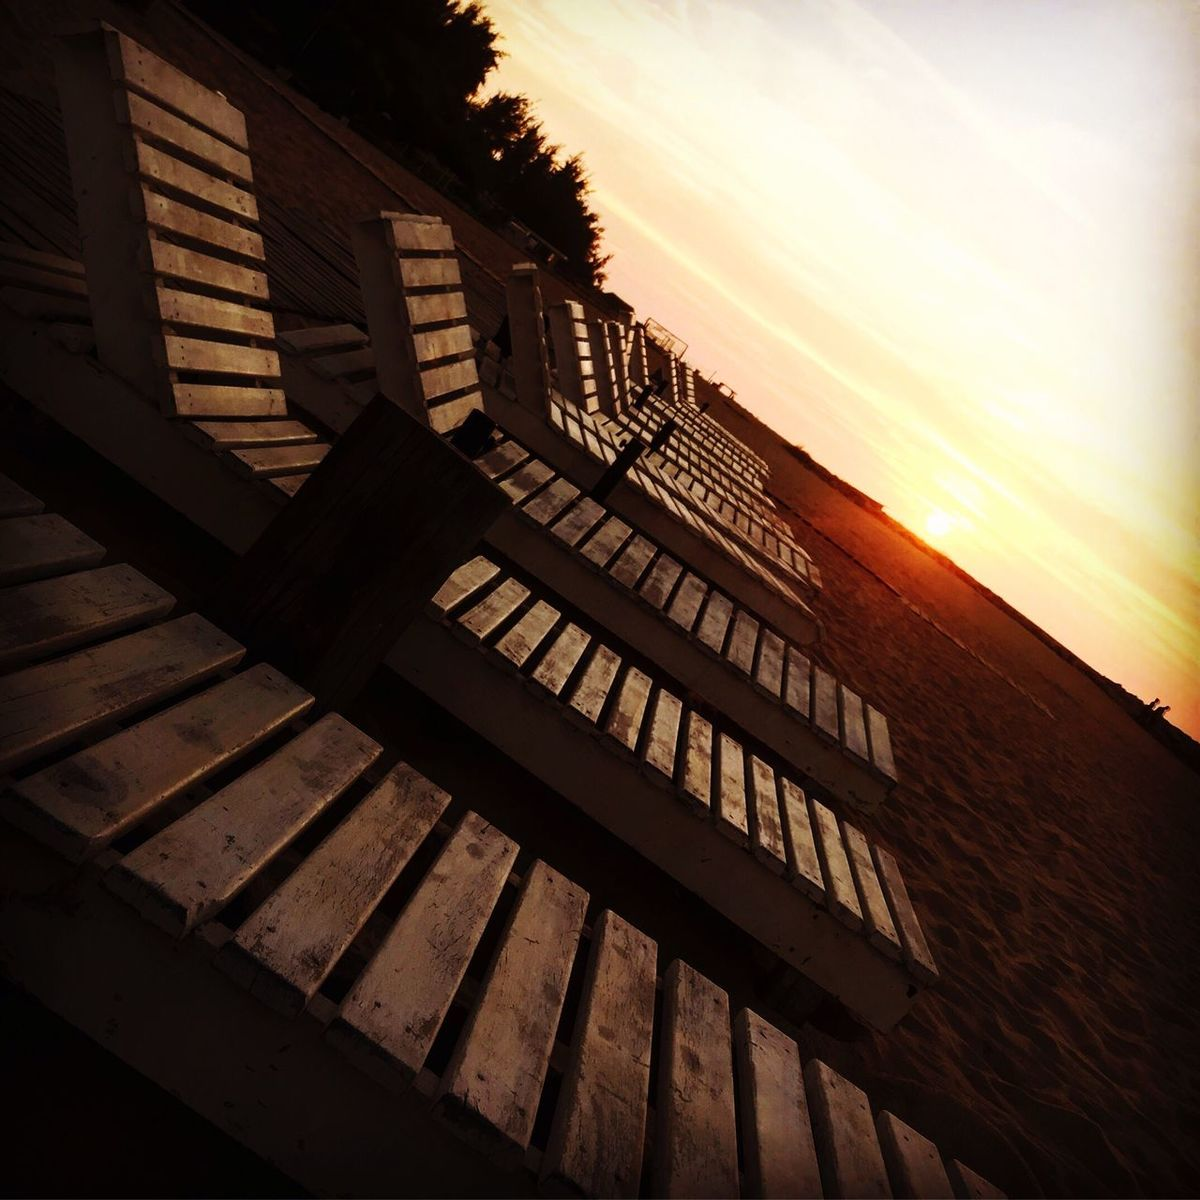 Sunset Built Structure Building Exterior Architecture No People Sunlight Silhouette Sky Steps Outdoors Day